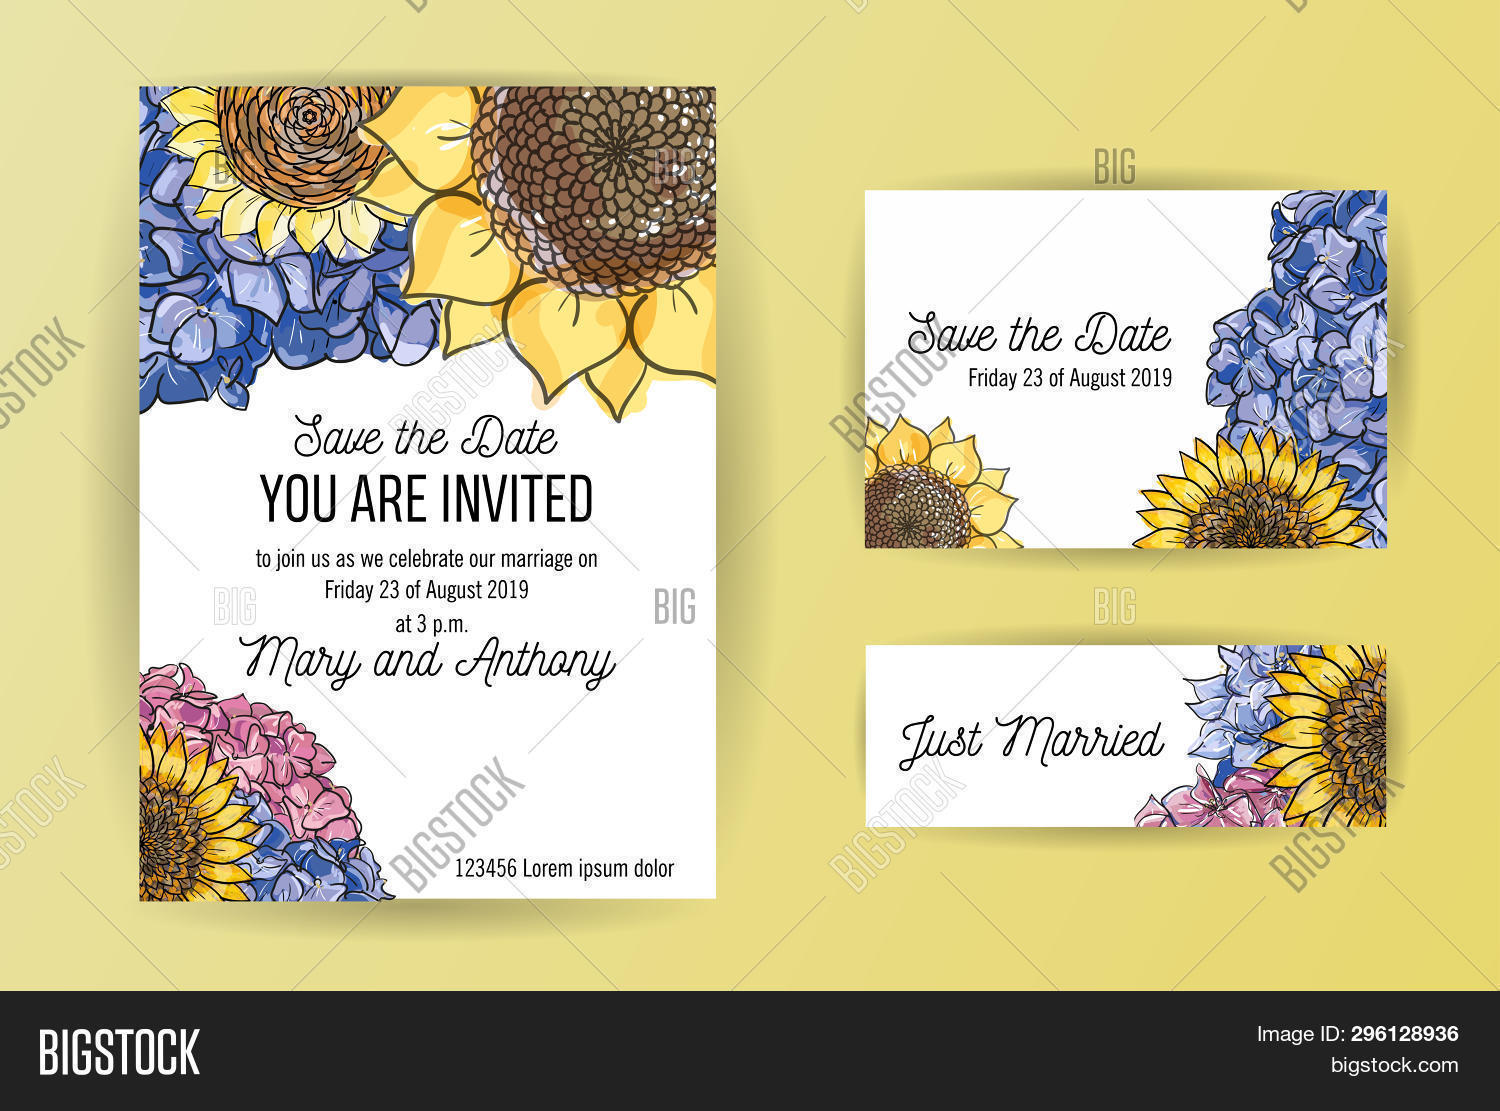 Set Wedding Invitation Image Photo Free Trial Bigstock